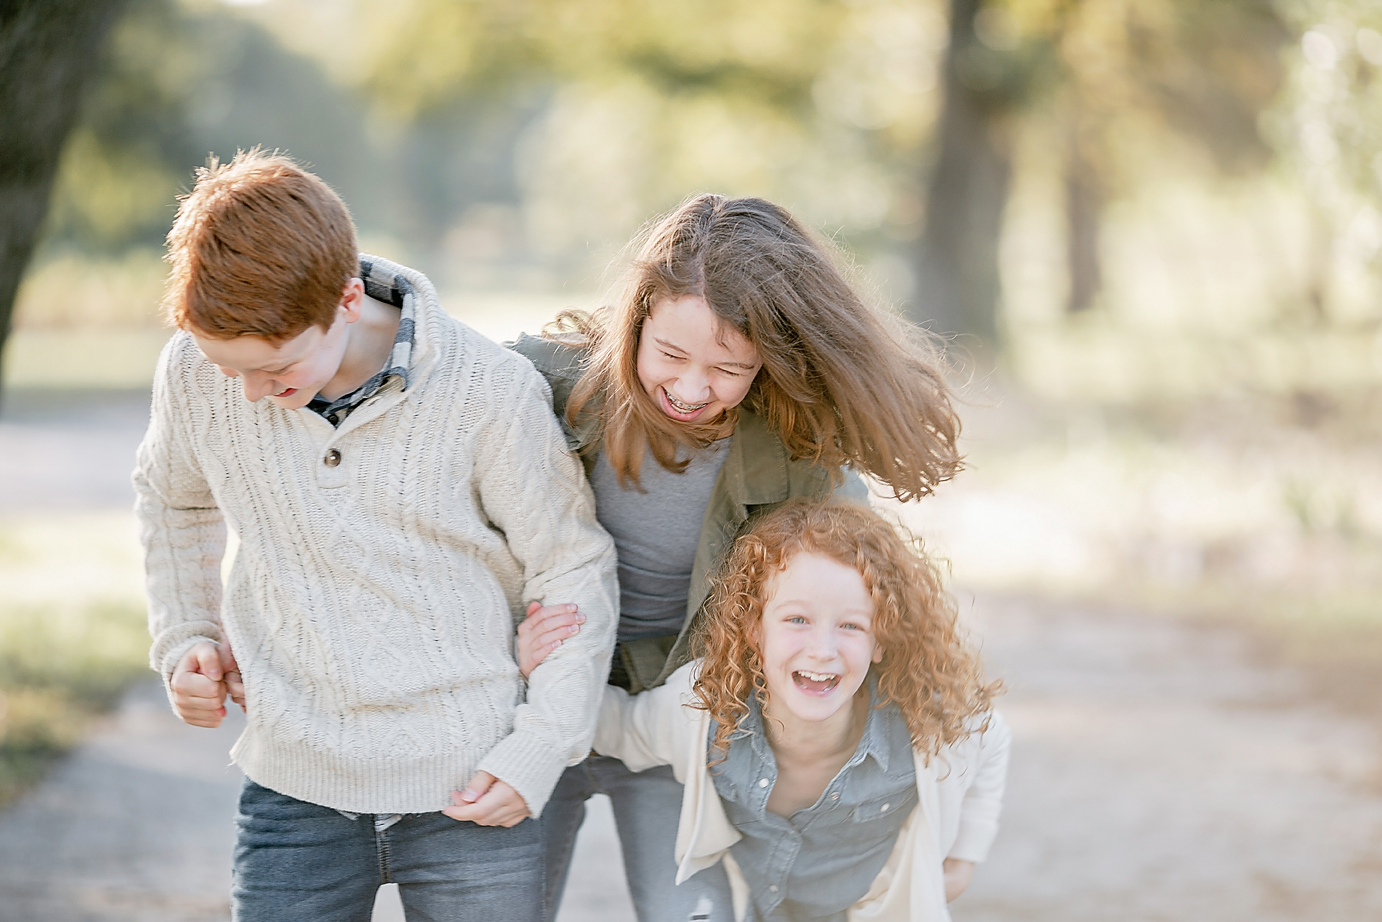 Dallas Family Photographer Southlake Photography Janning kate marie portraiture 1.png